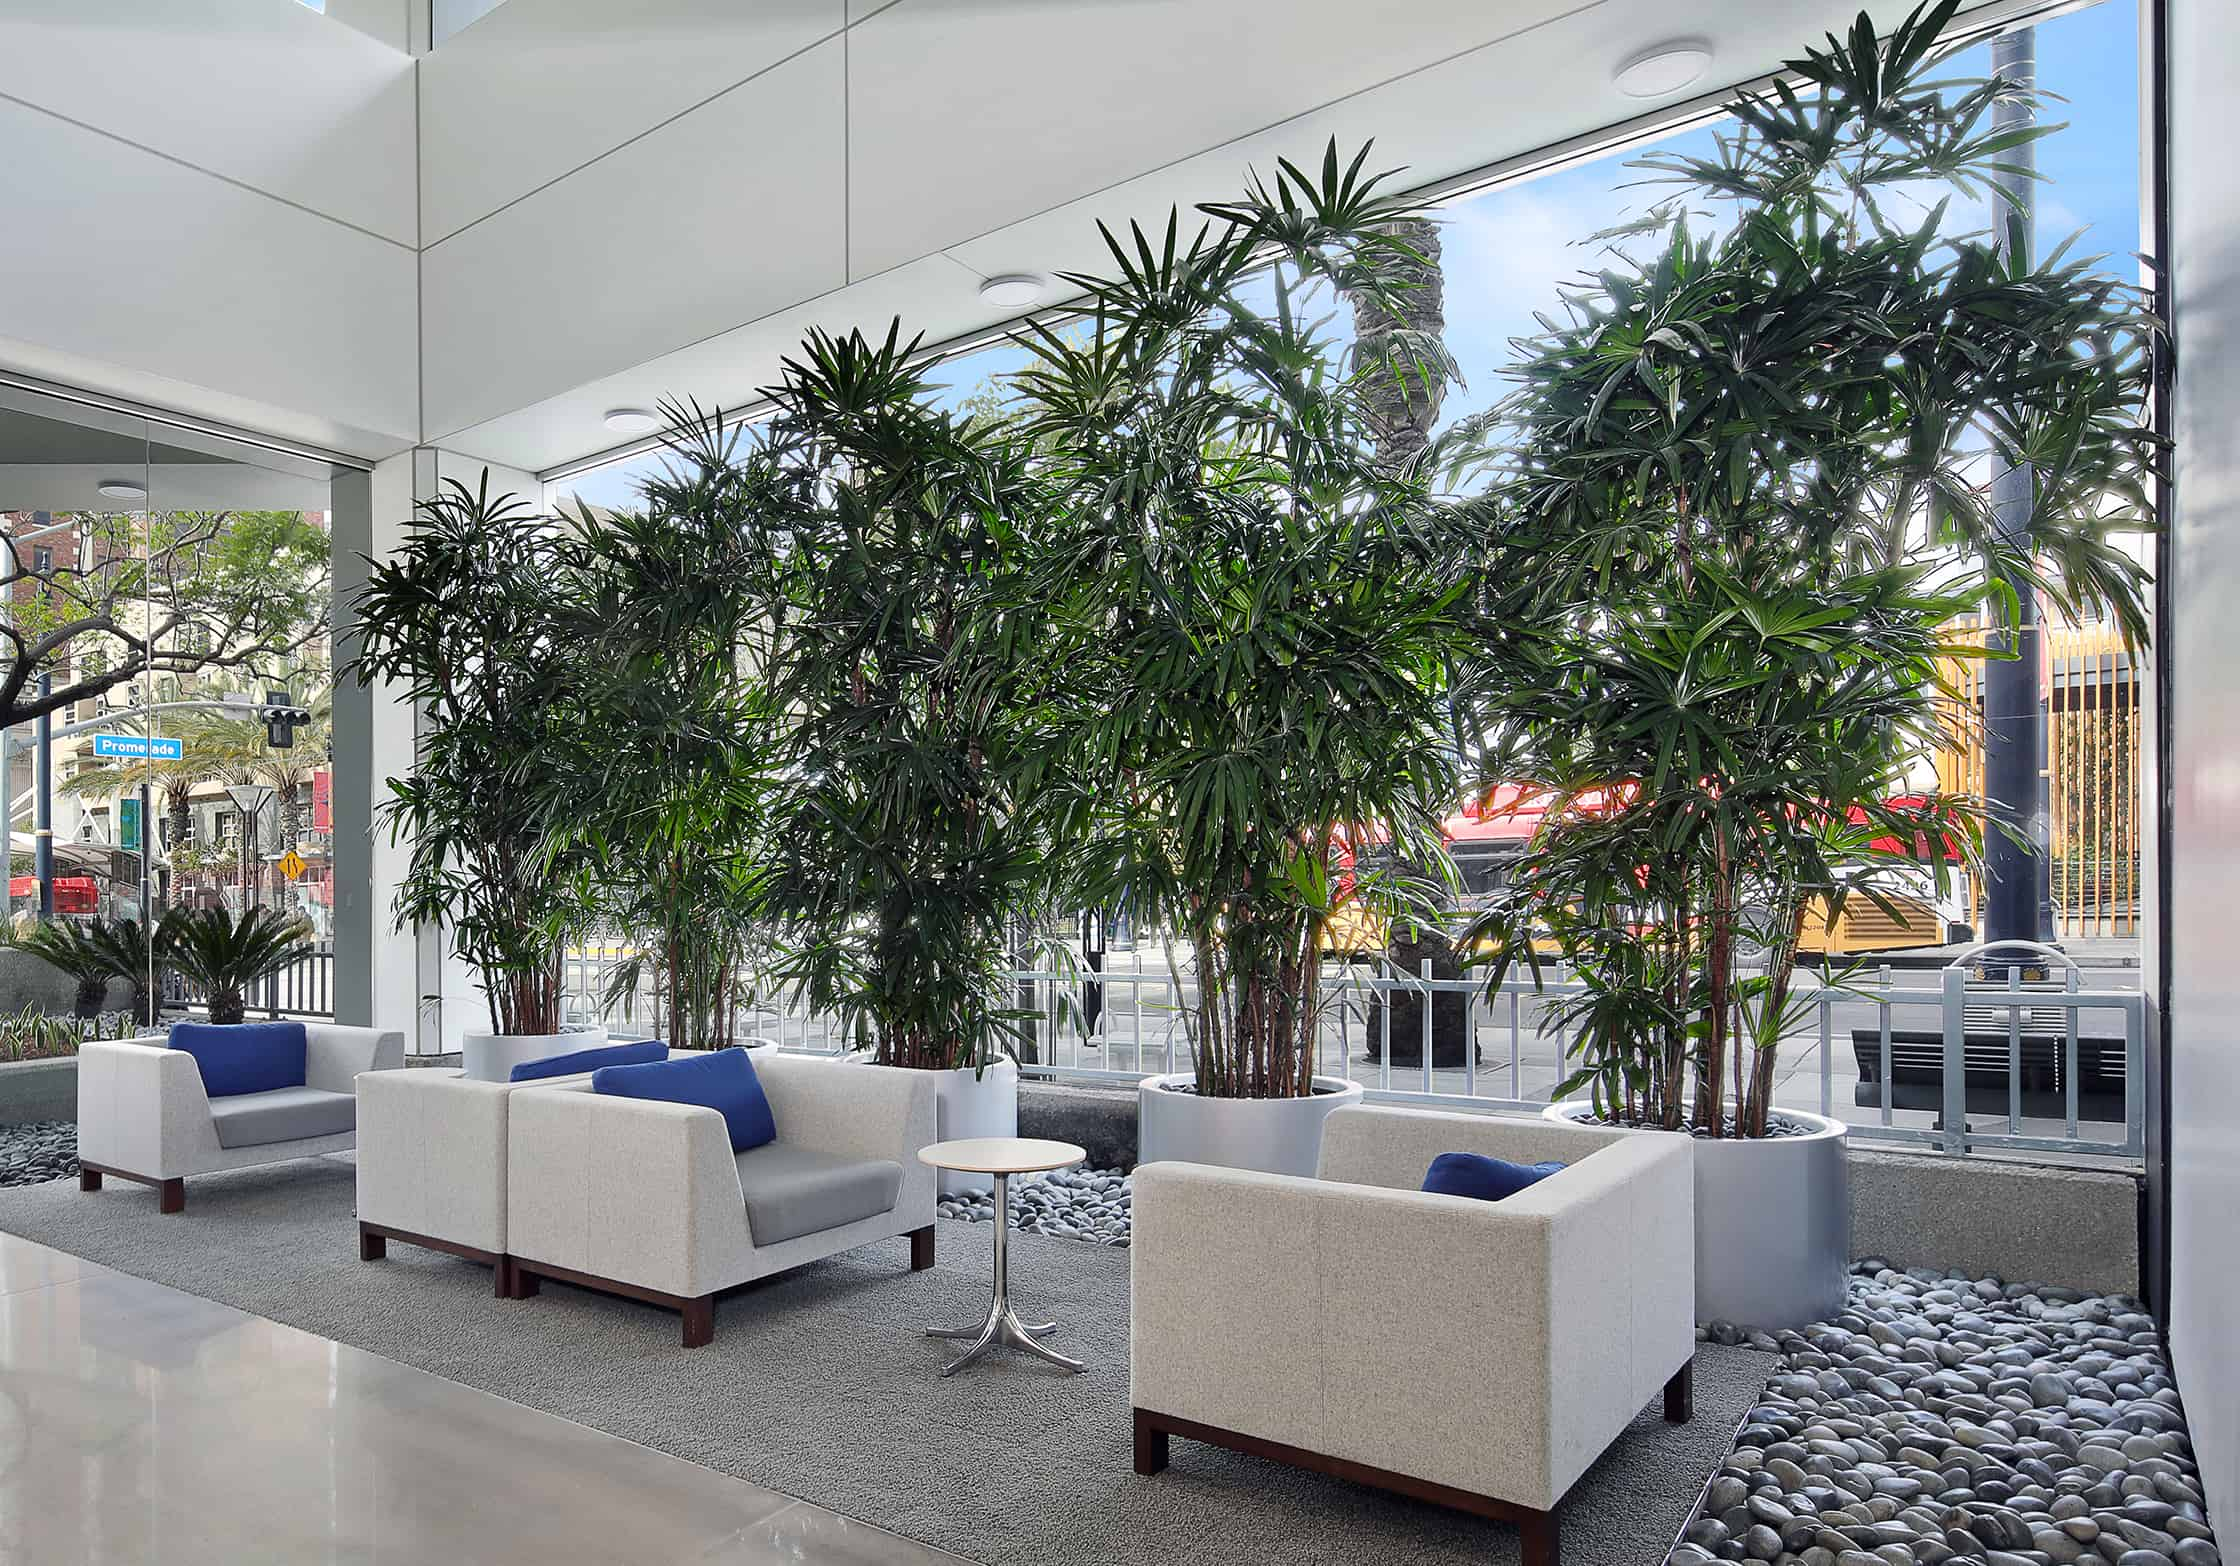 Living Trees Indoors Brings In A Feeling Of Wellness To